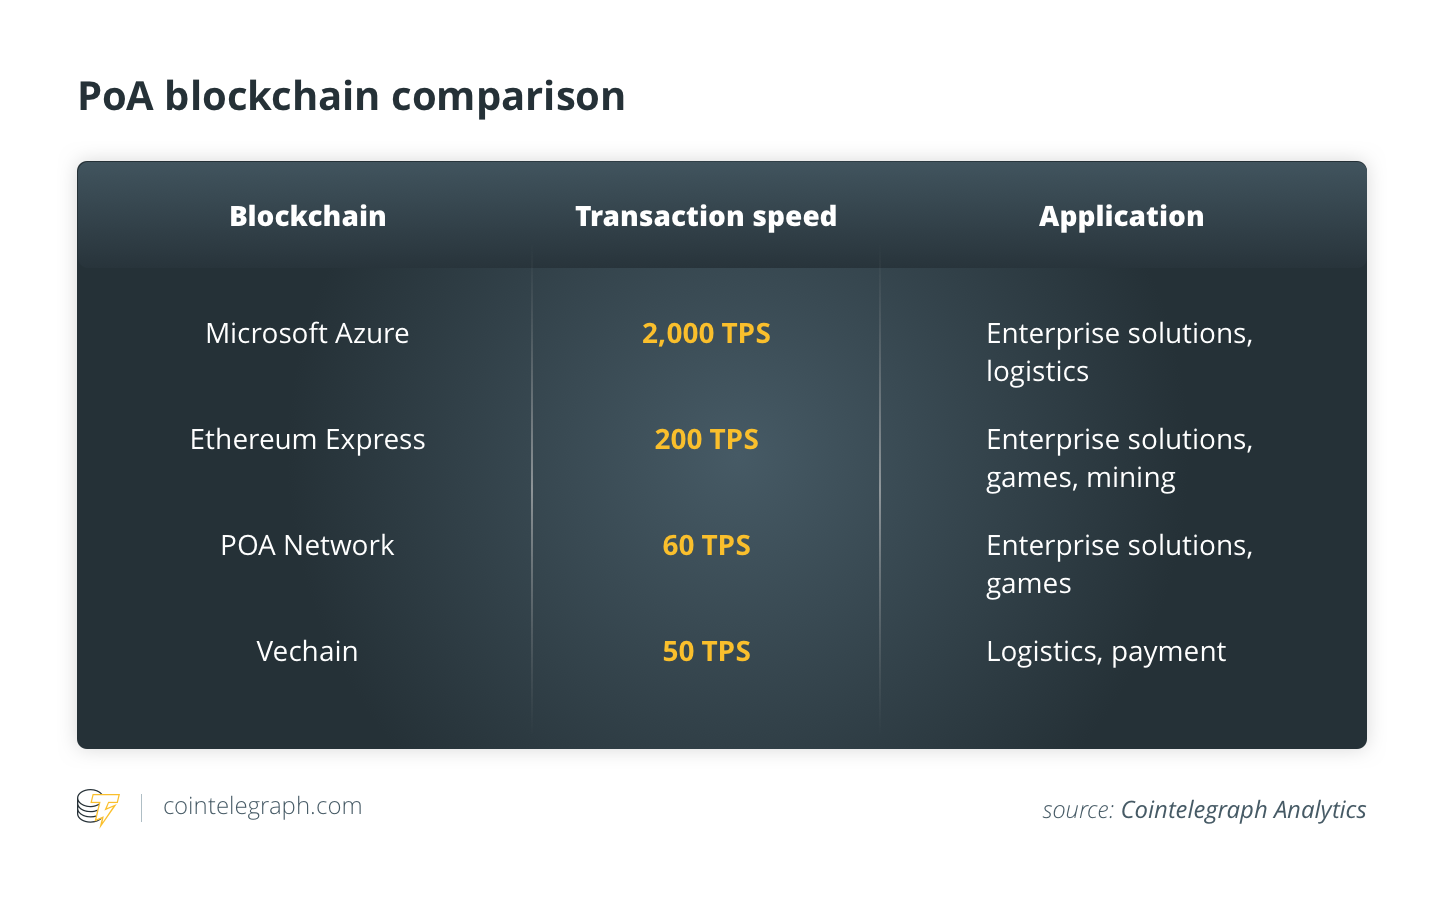 PoA blockchain comparison